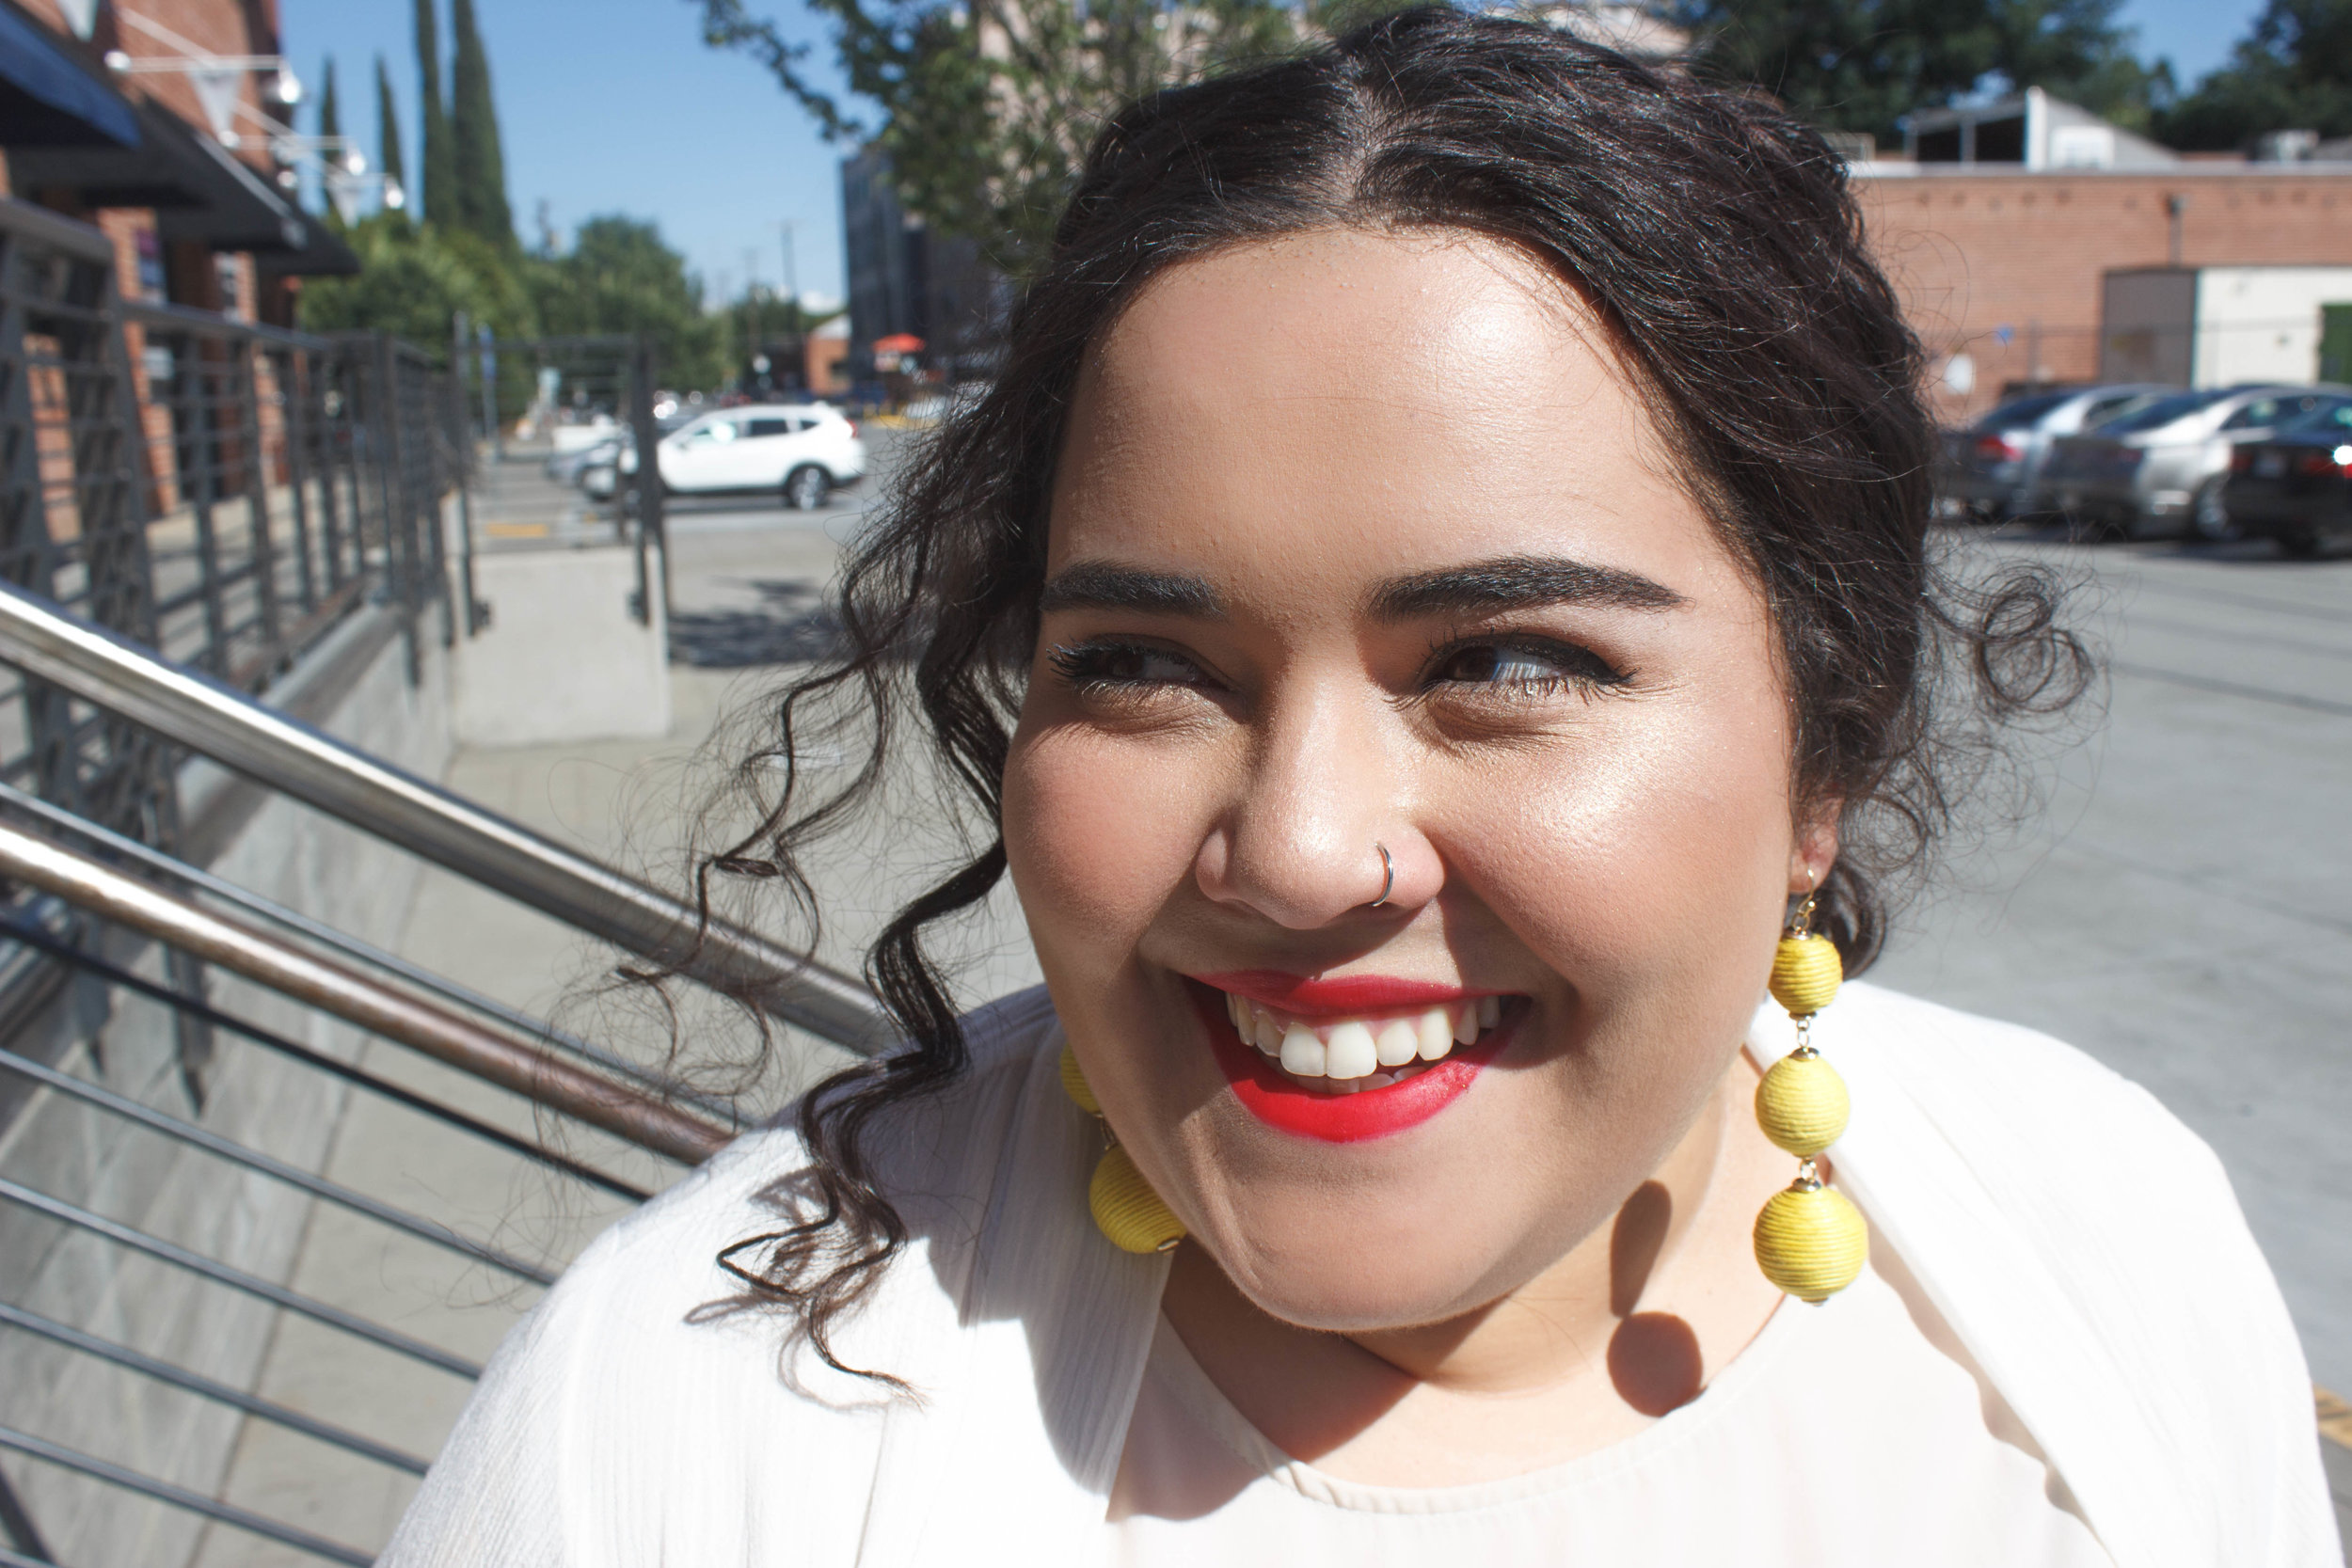 + Yellow pom pom earrings for a pop of color -